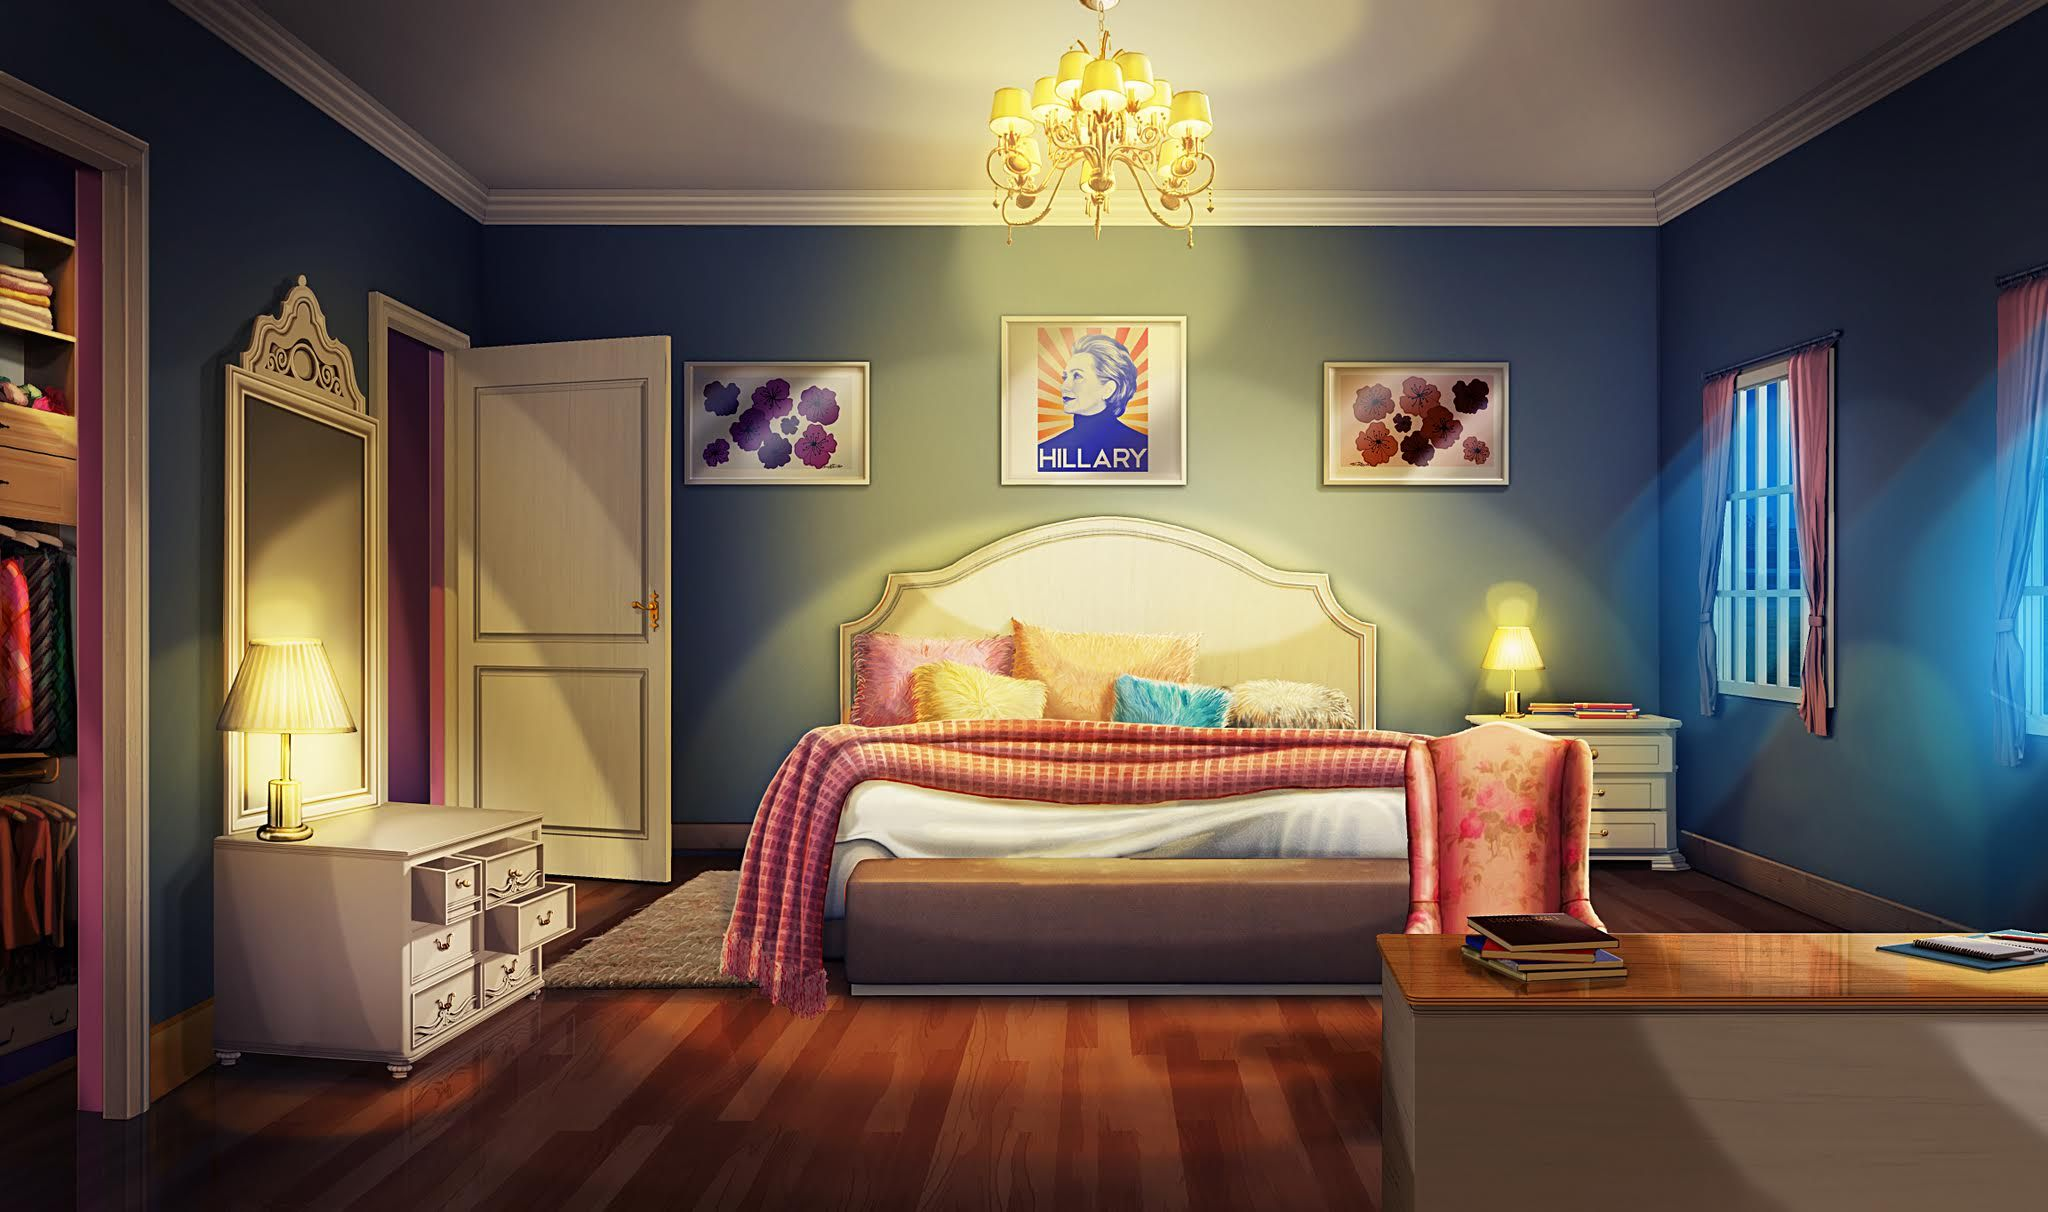 Int bristols bedroom night episode pinterest for Scenery wallpaper for bedroom